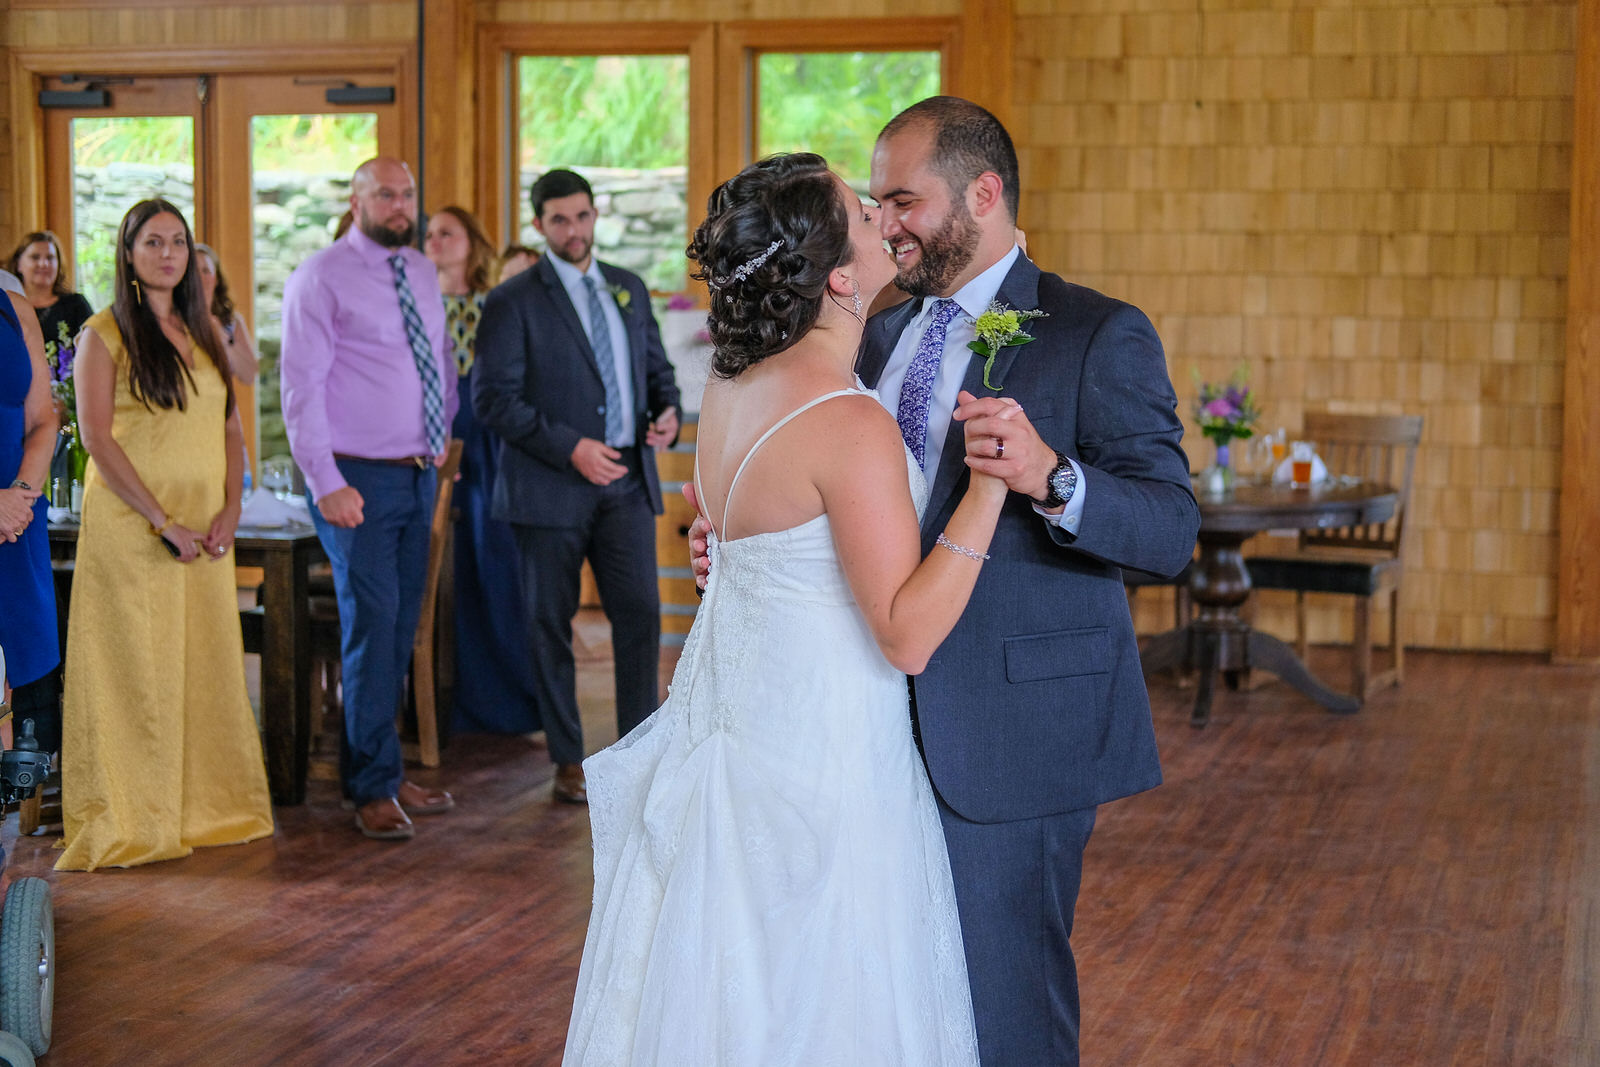 nashoba-valley-winery-wedding-photography-921.jpg